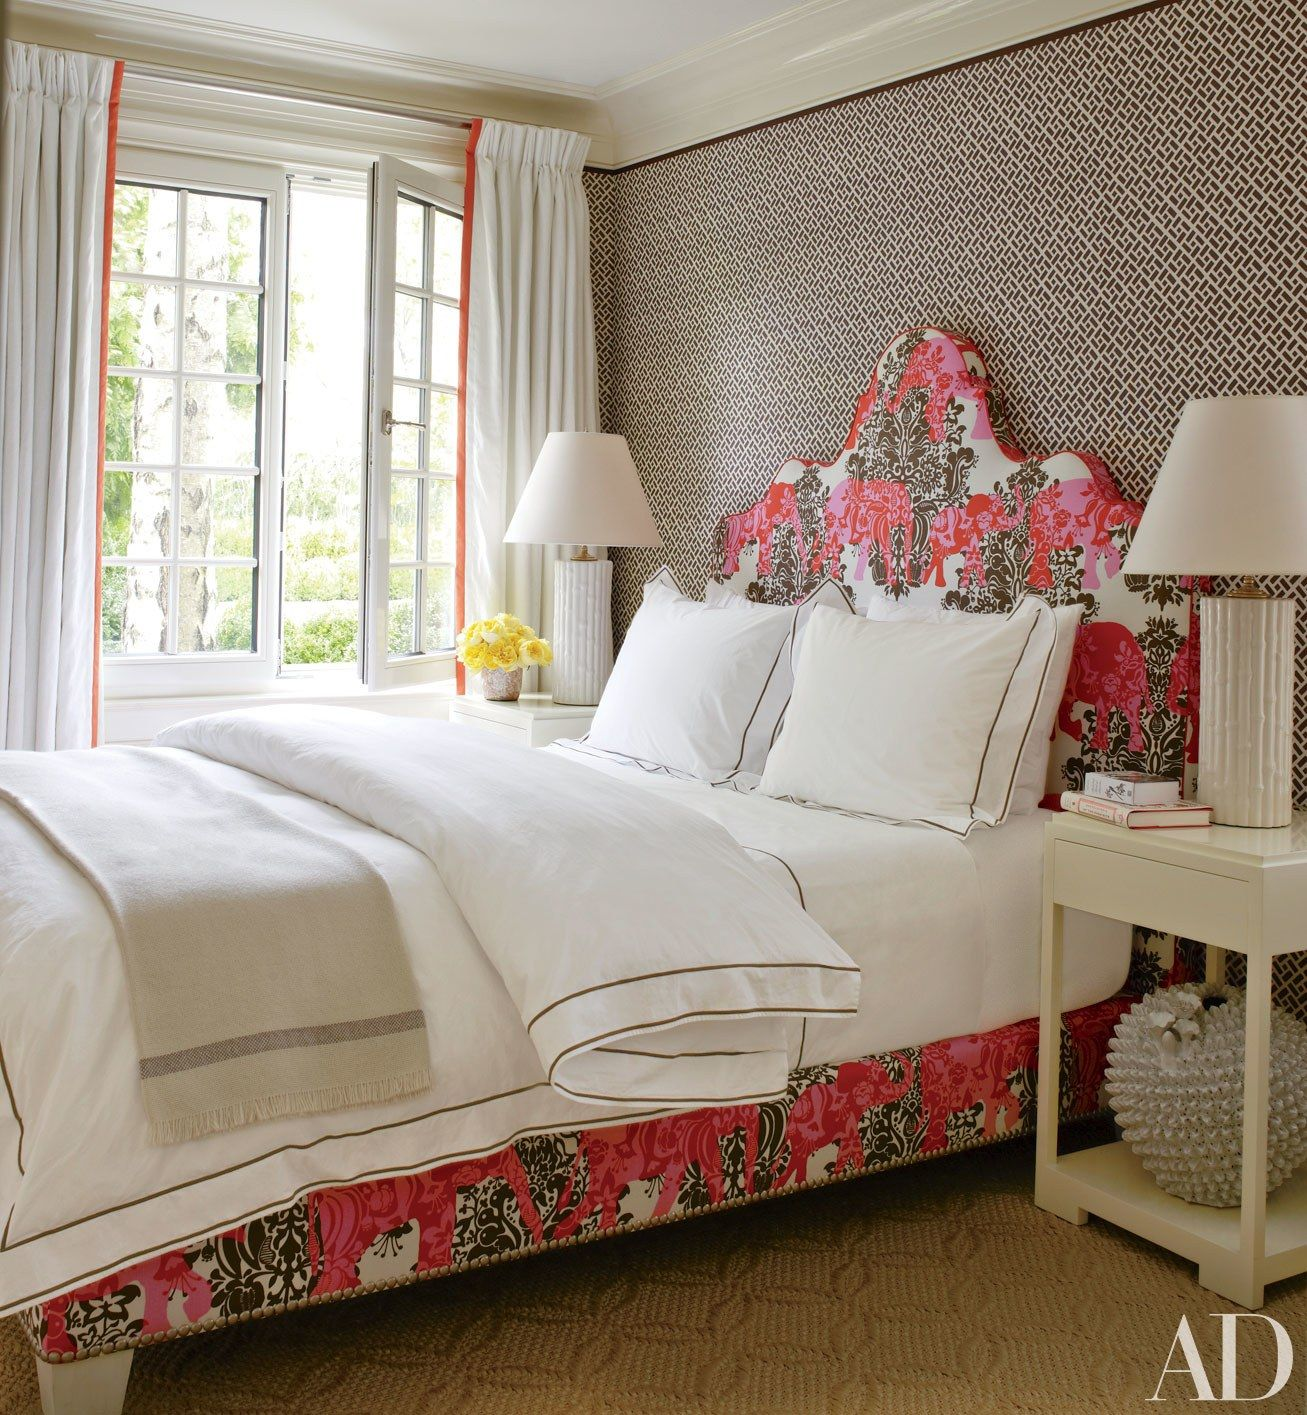 Bedroom Decor Next 30 headboards to inspire your next bedroom redo | bed headboards